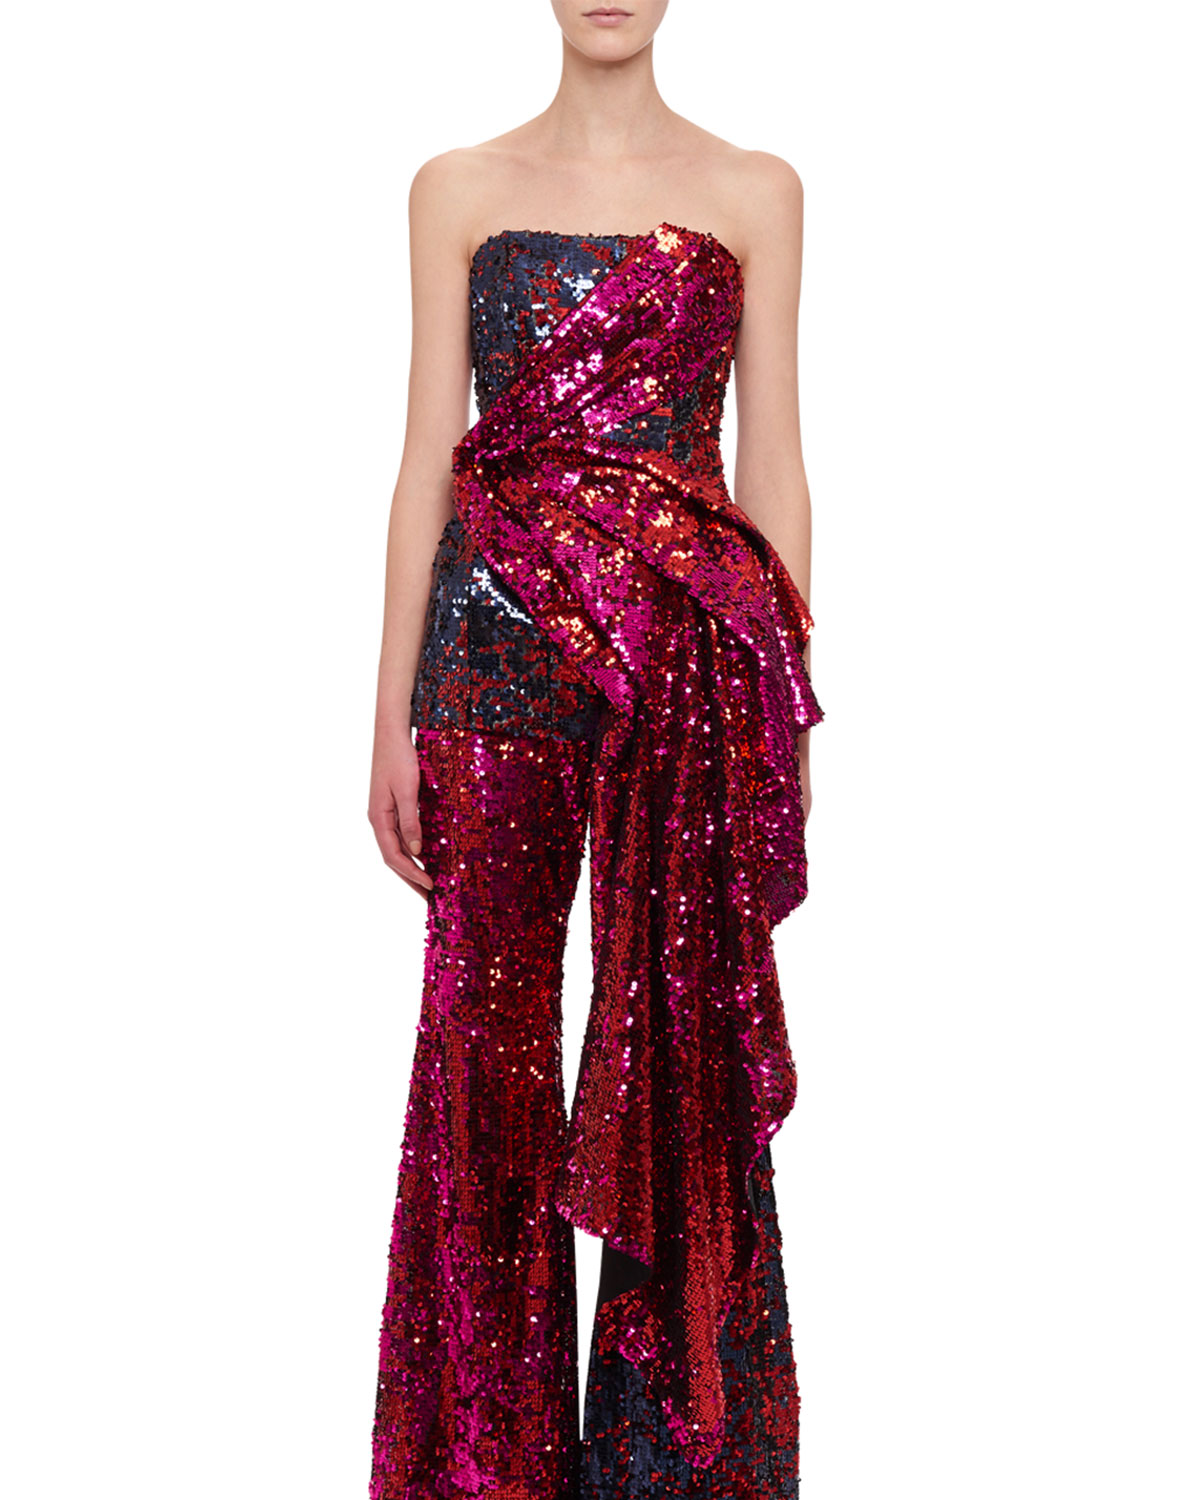 Strapless Bustier Draped Sequin Top